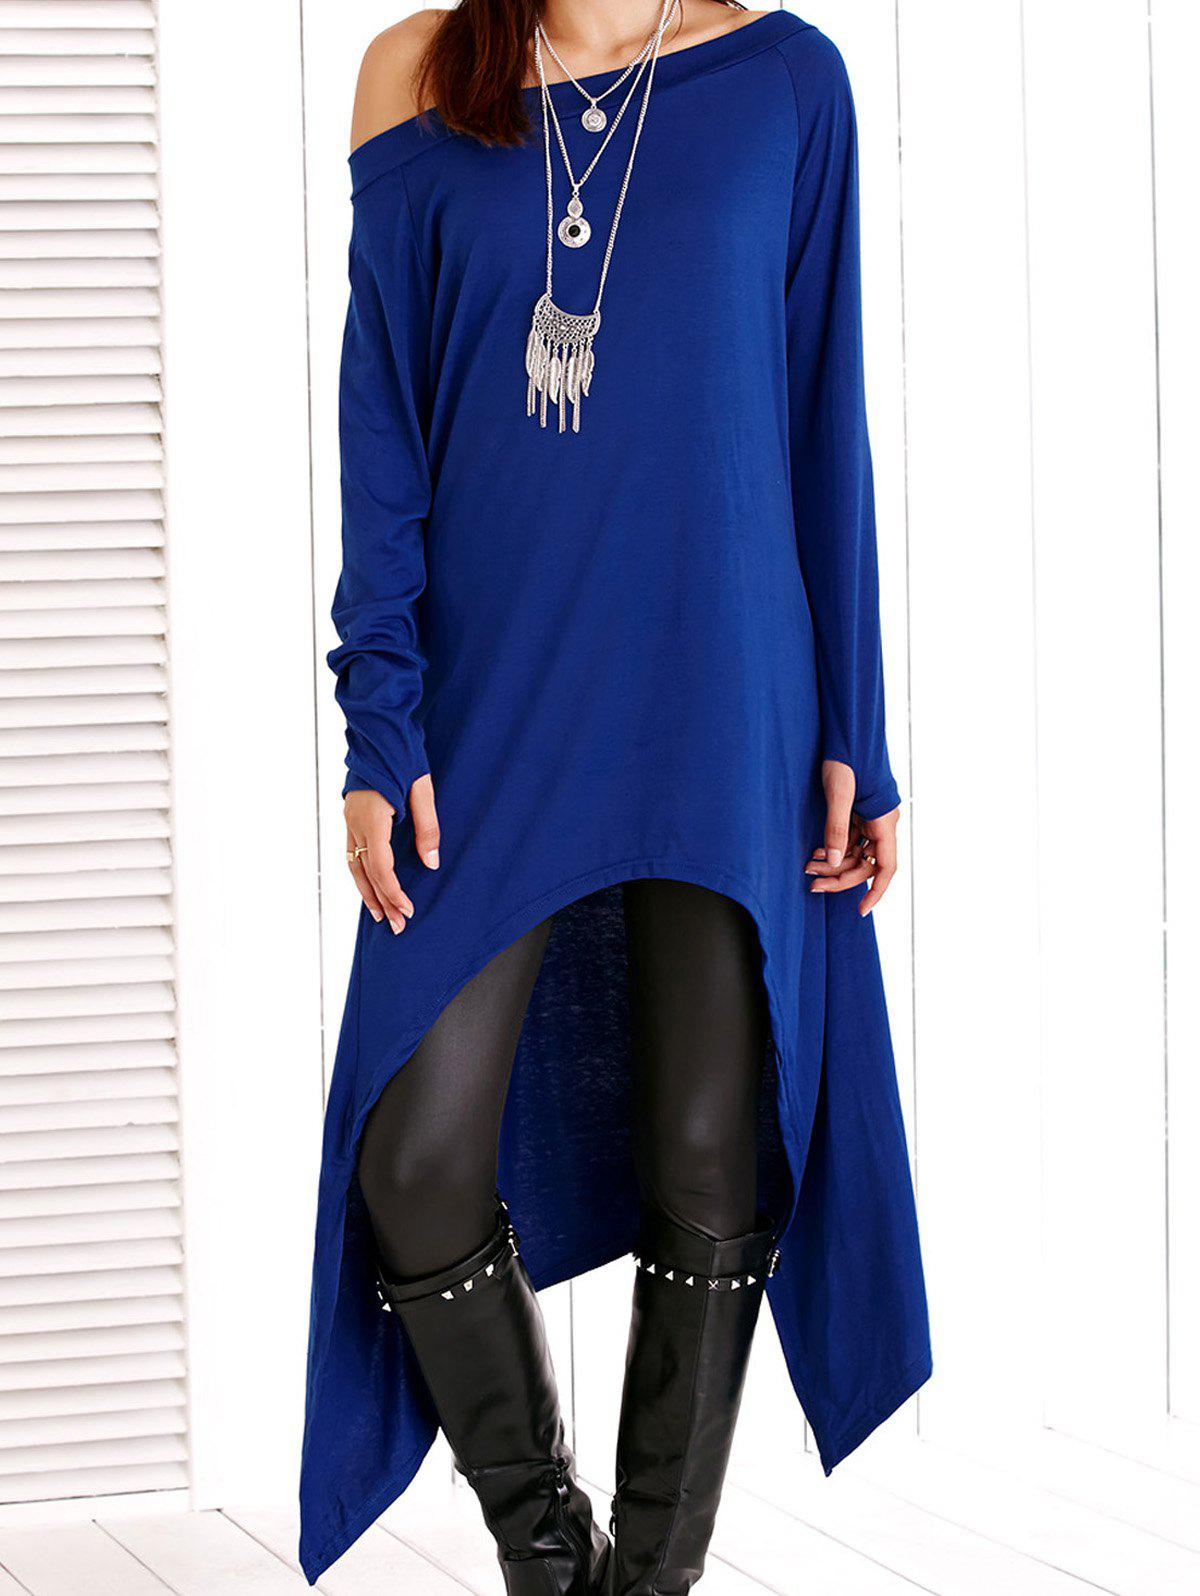 Long Sleeve Skew Neck Solid Color Asymmetric Dress - SAPPHIRE BLUE M